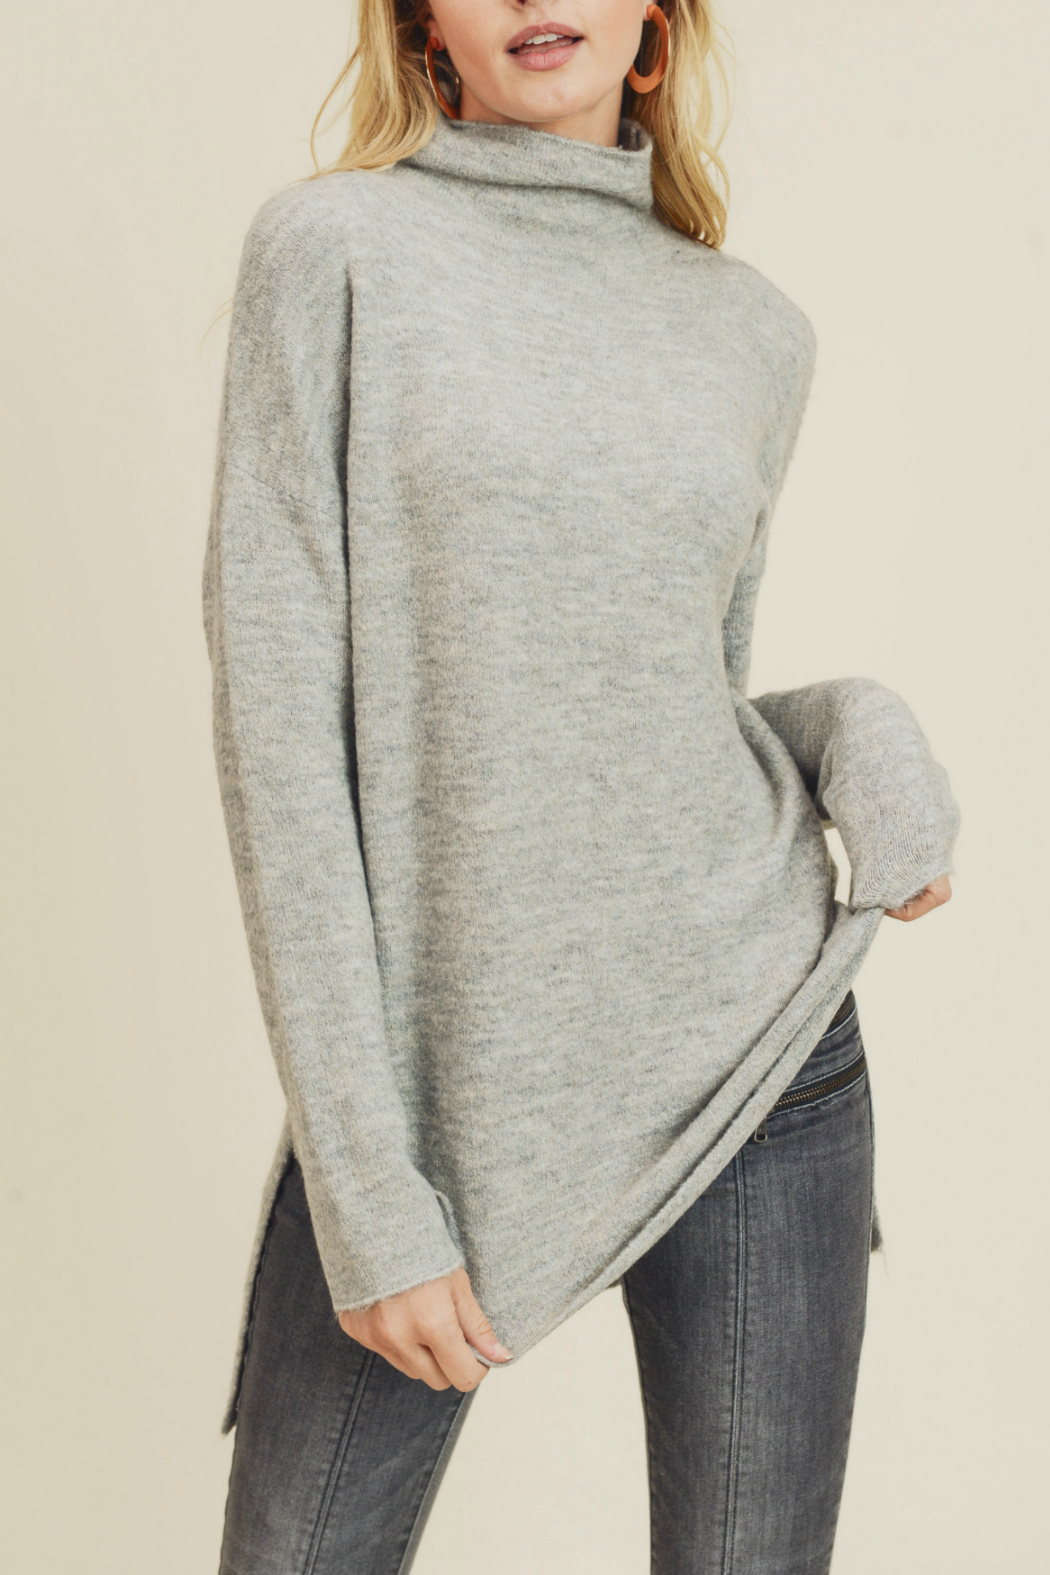 Doe & Rae FUNNEL NECK & DROPPED SLEEVES KNIT - Main Image